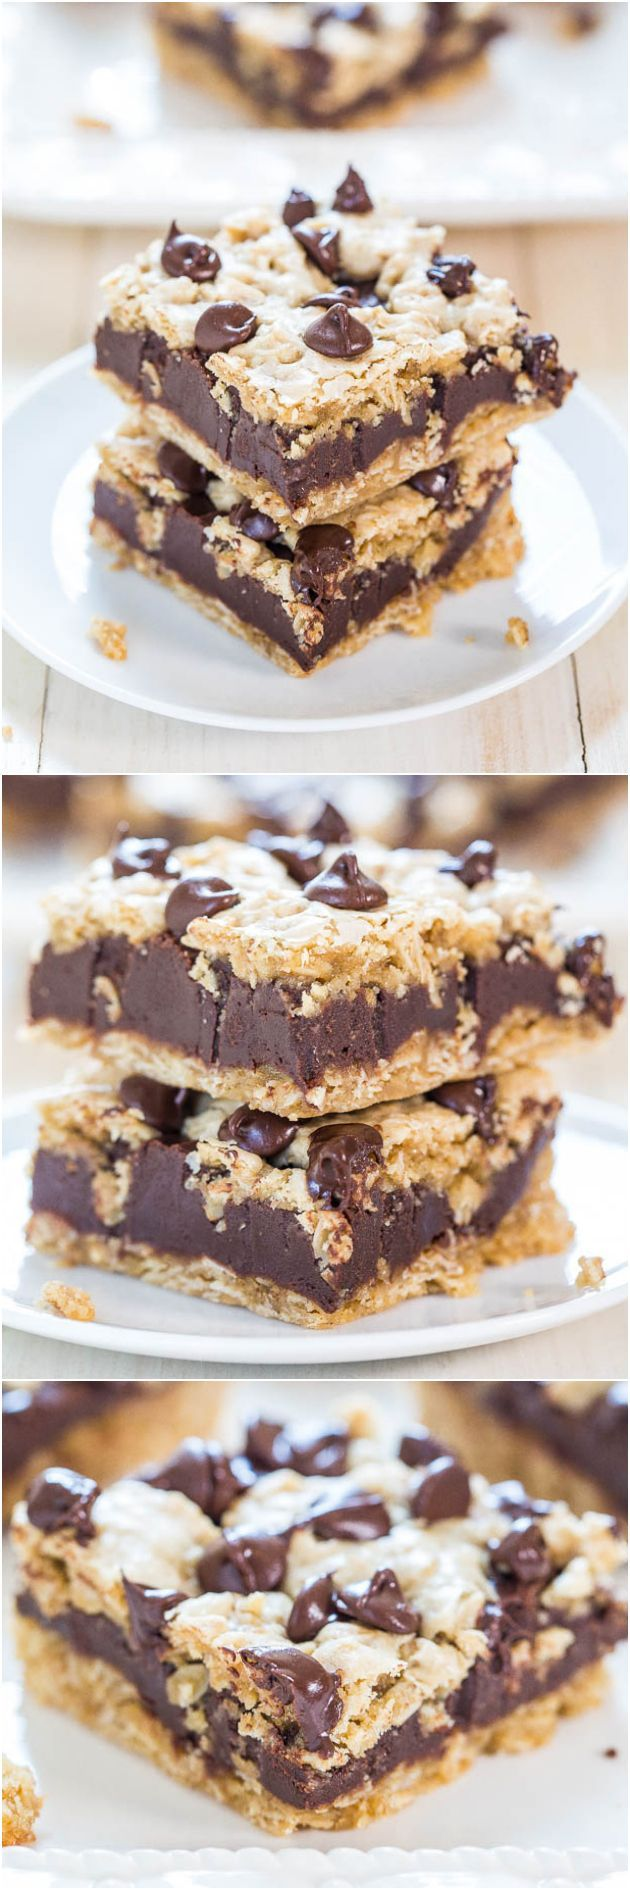 Fudgy Oatmeal Chocolate Chip Cookie Bars #recipe #cookies